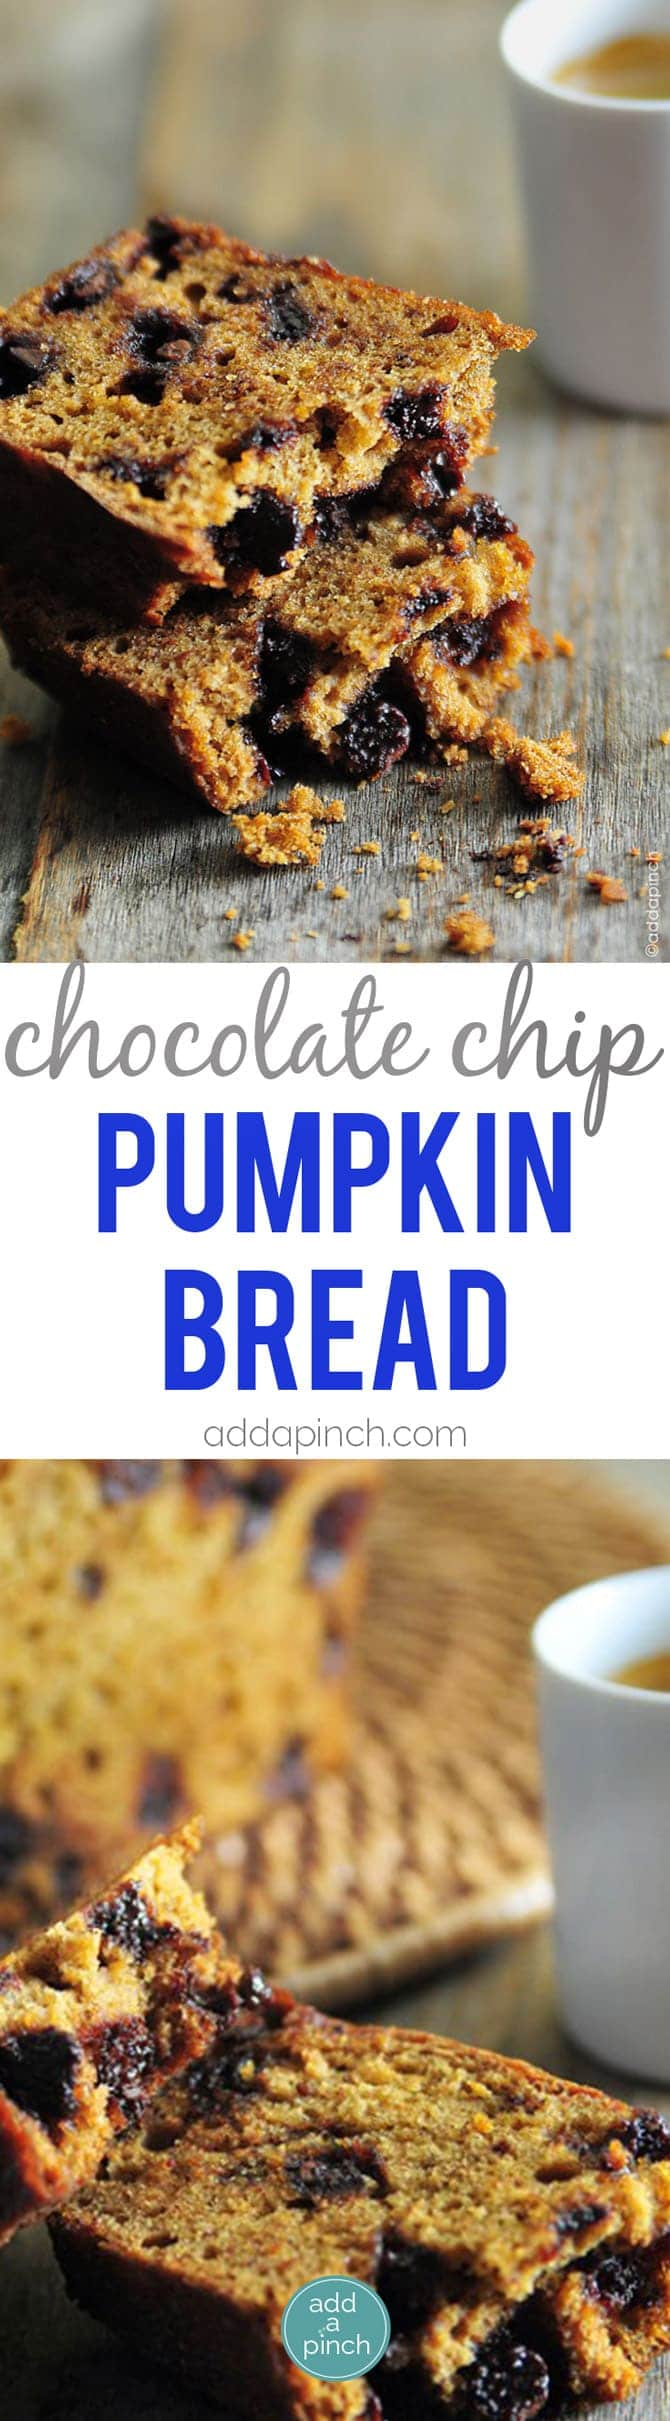 Chocolate Chip Pumpkin Bread Recipe - Chocolate Chip Espresso Pumpkin Bread will quickly become one of your most looked forward to pumpkin bread recipes. Seriously, this pumpkin bread is a year-round favorite! // addapinch.com